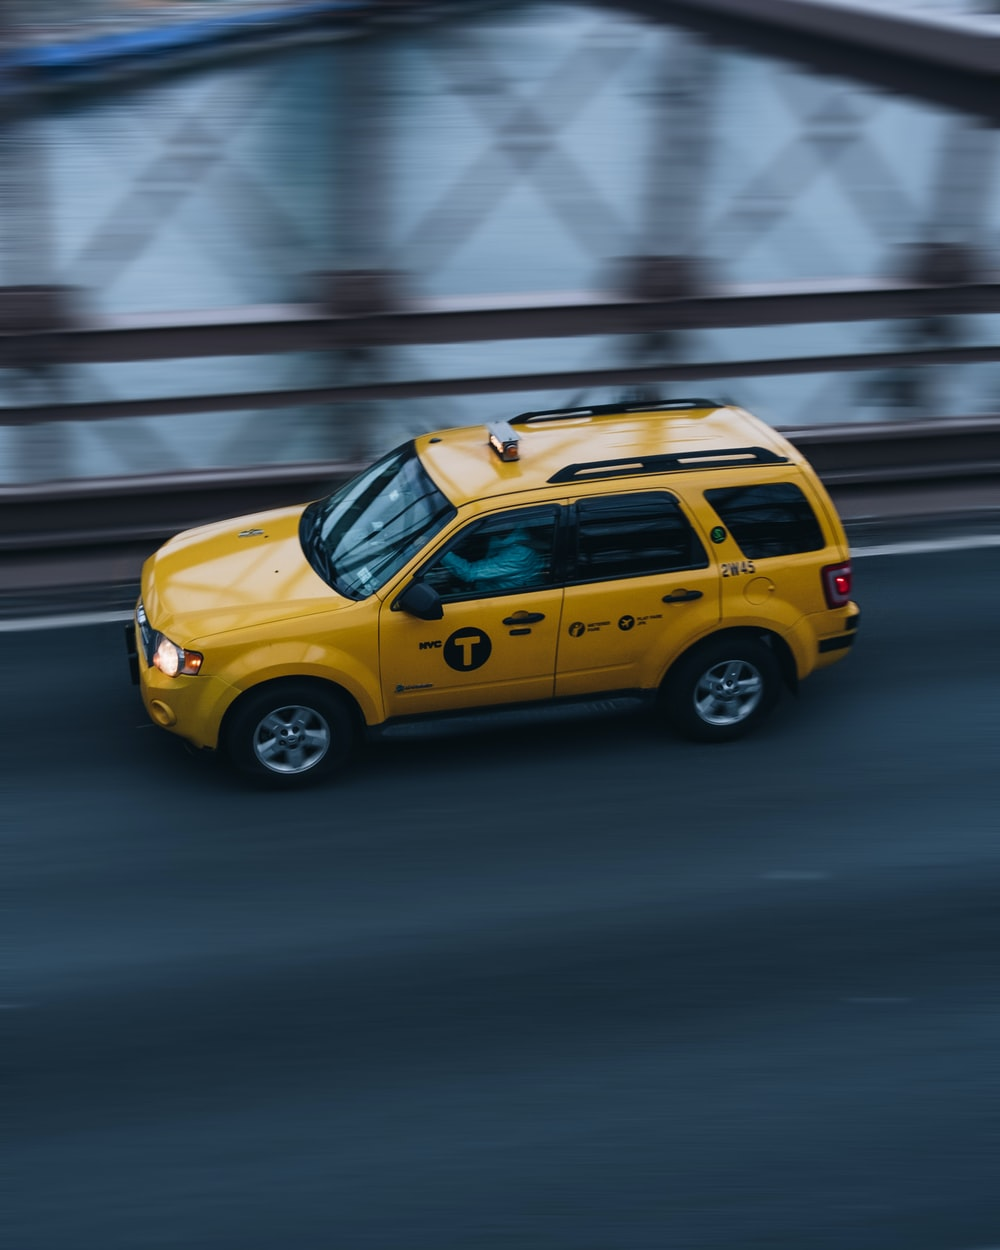 time lapse photo of yellow SUV on road